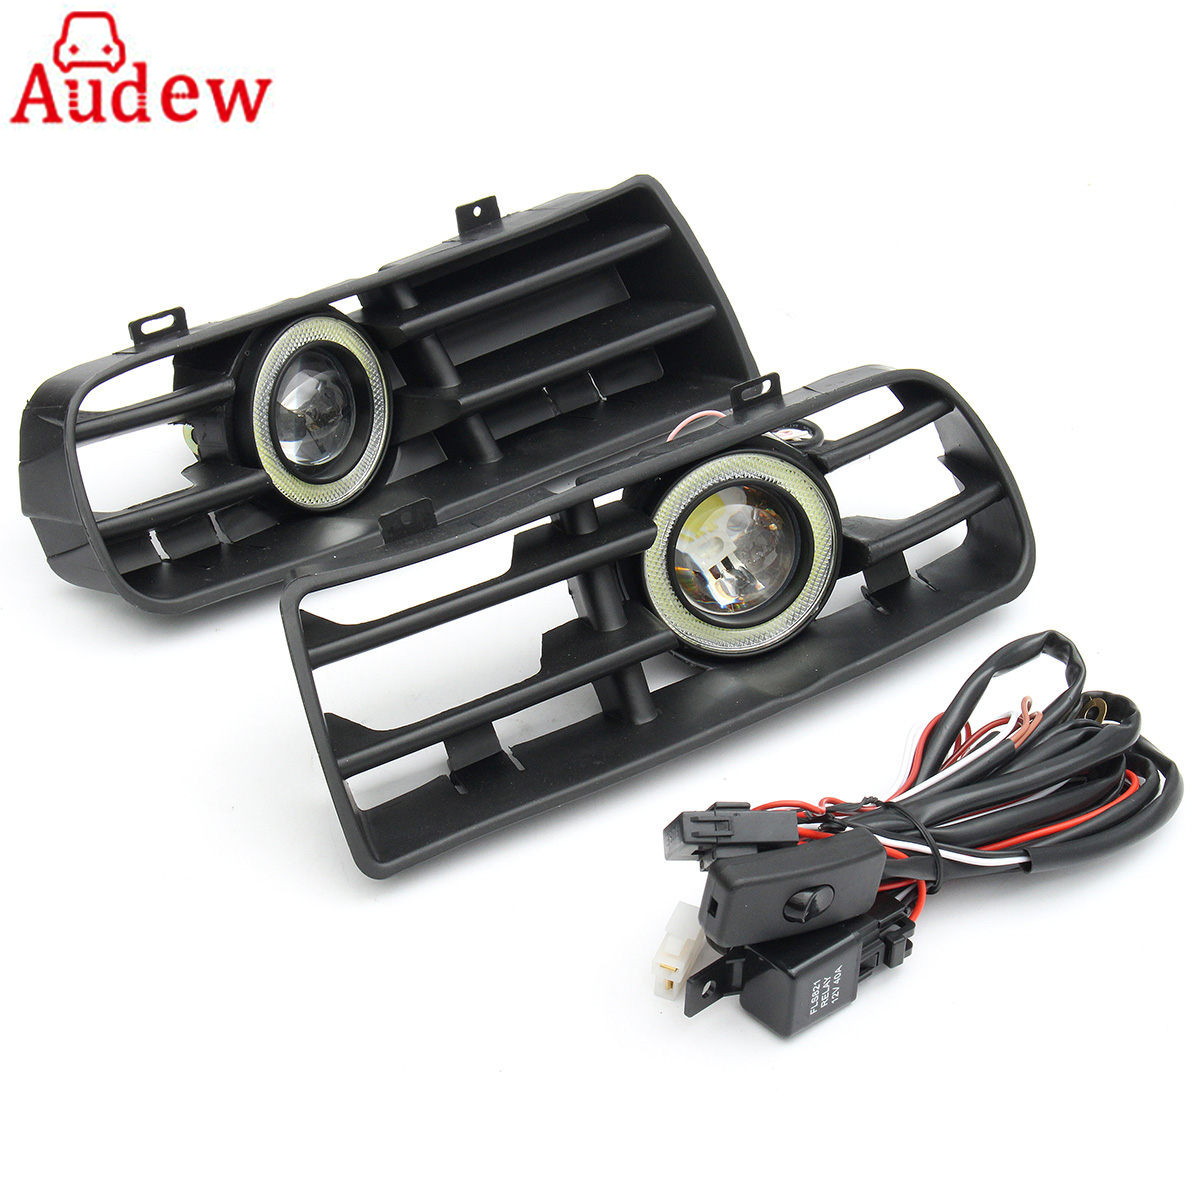 1Pair LED Fog Lights Angel Eyes Lamp Car Front Bumper Grille Grill Cover With Wire Kit For VW Golf MK4 98-04 for opel astra h gtc 2005 15 h11 wiring harness sockets wire connector switch 2 fog lights drl front bumper 5d lens led lamp